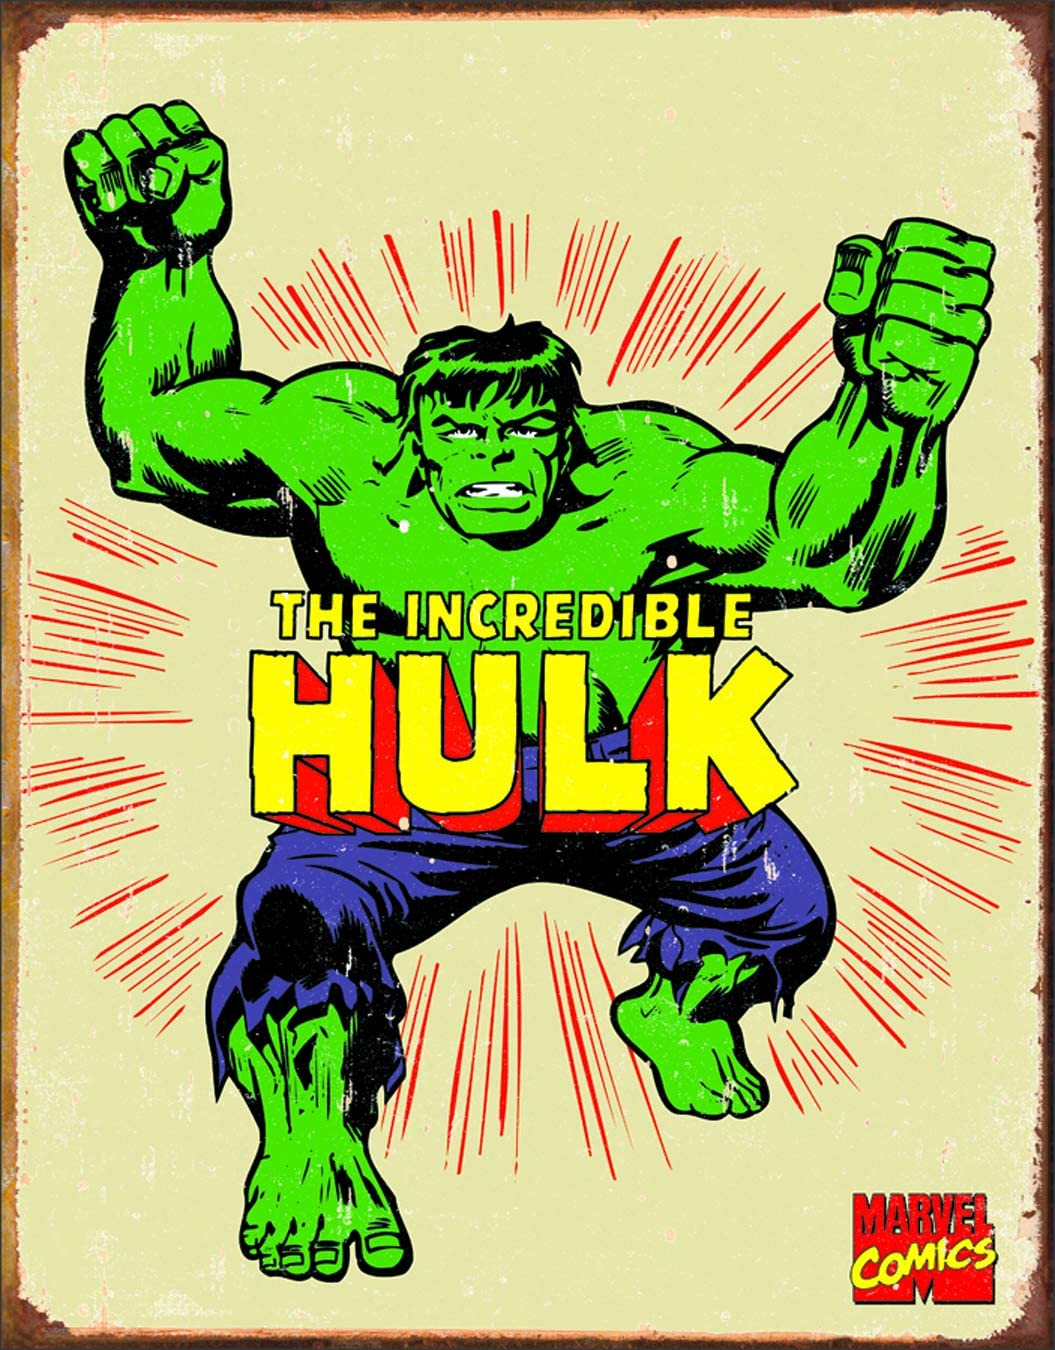 Desperate Enterprises Marvel Comics The Incredible Hulk Retro Tin Sign, 12.5 W x 16 H